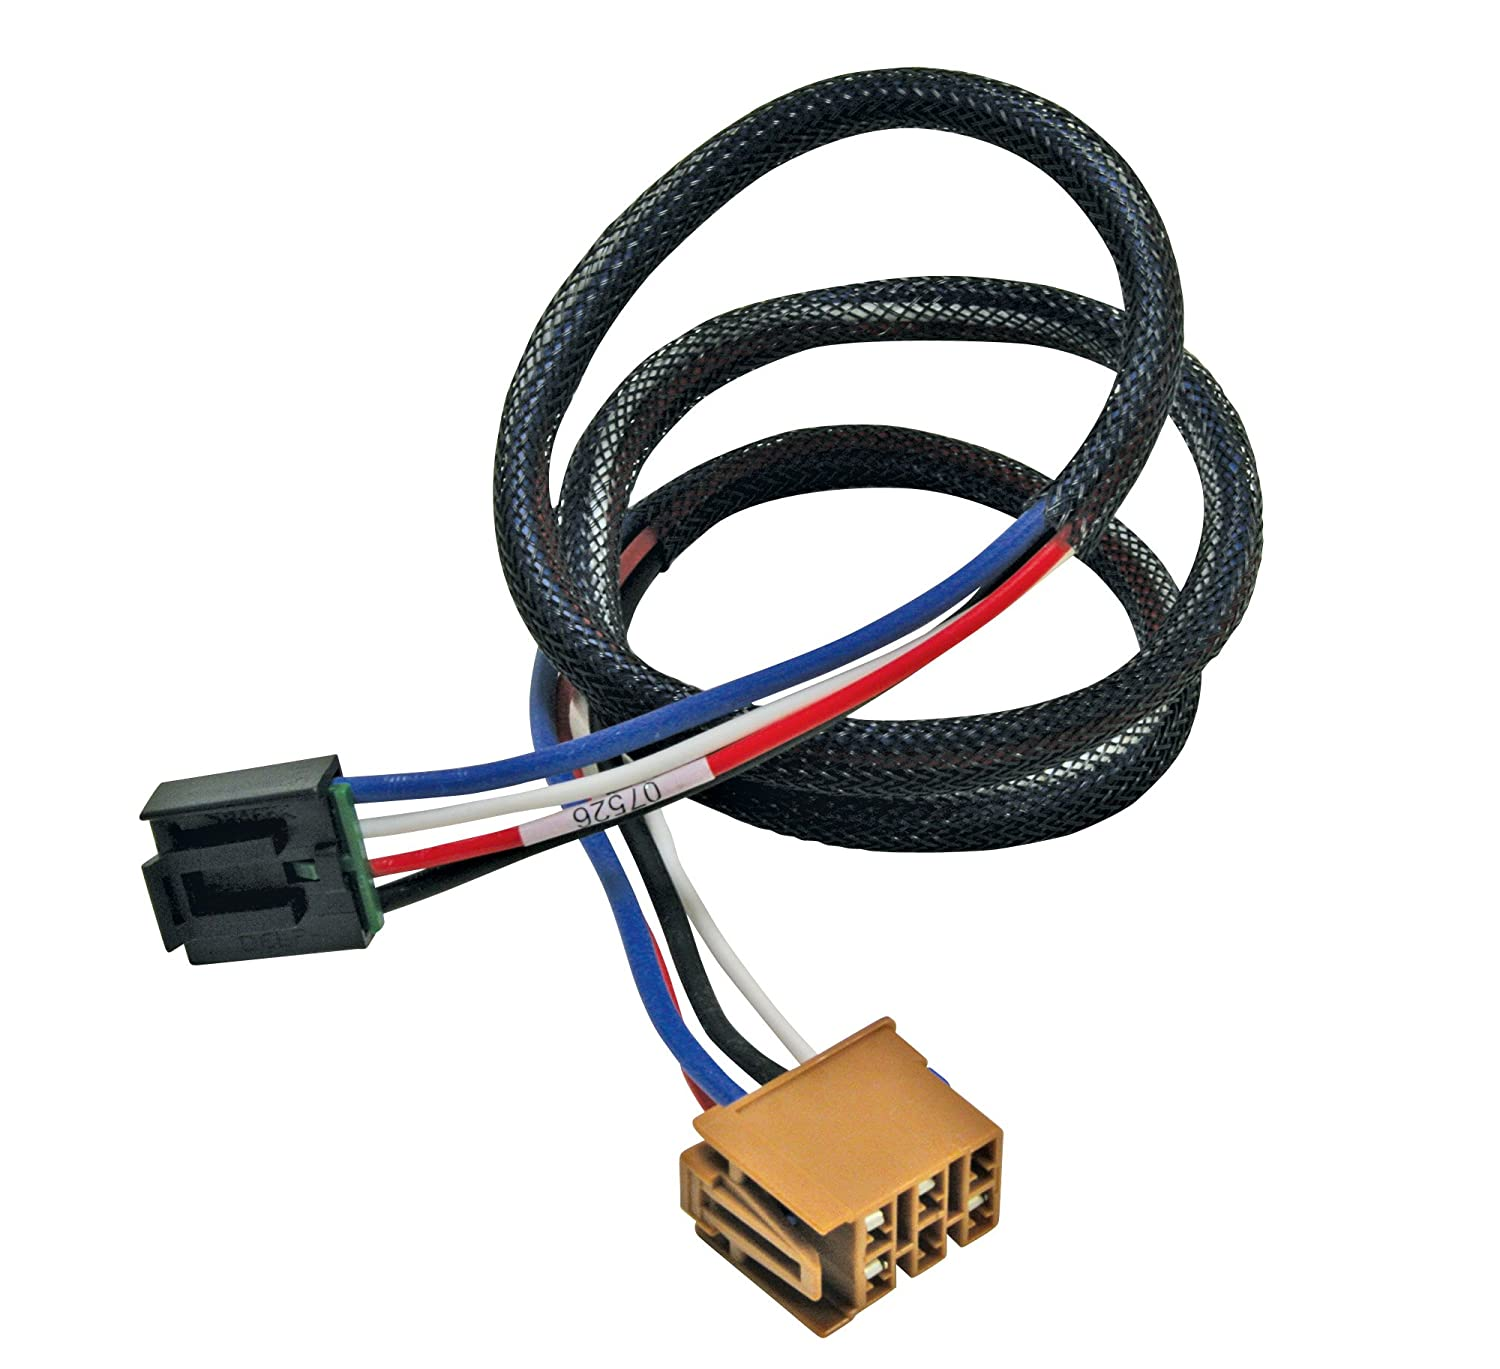 81Wid6hHVrL._SL1500_ amazon com reese towpower 7805011 brake control wiring harness